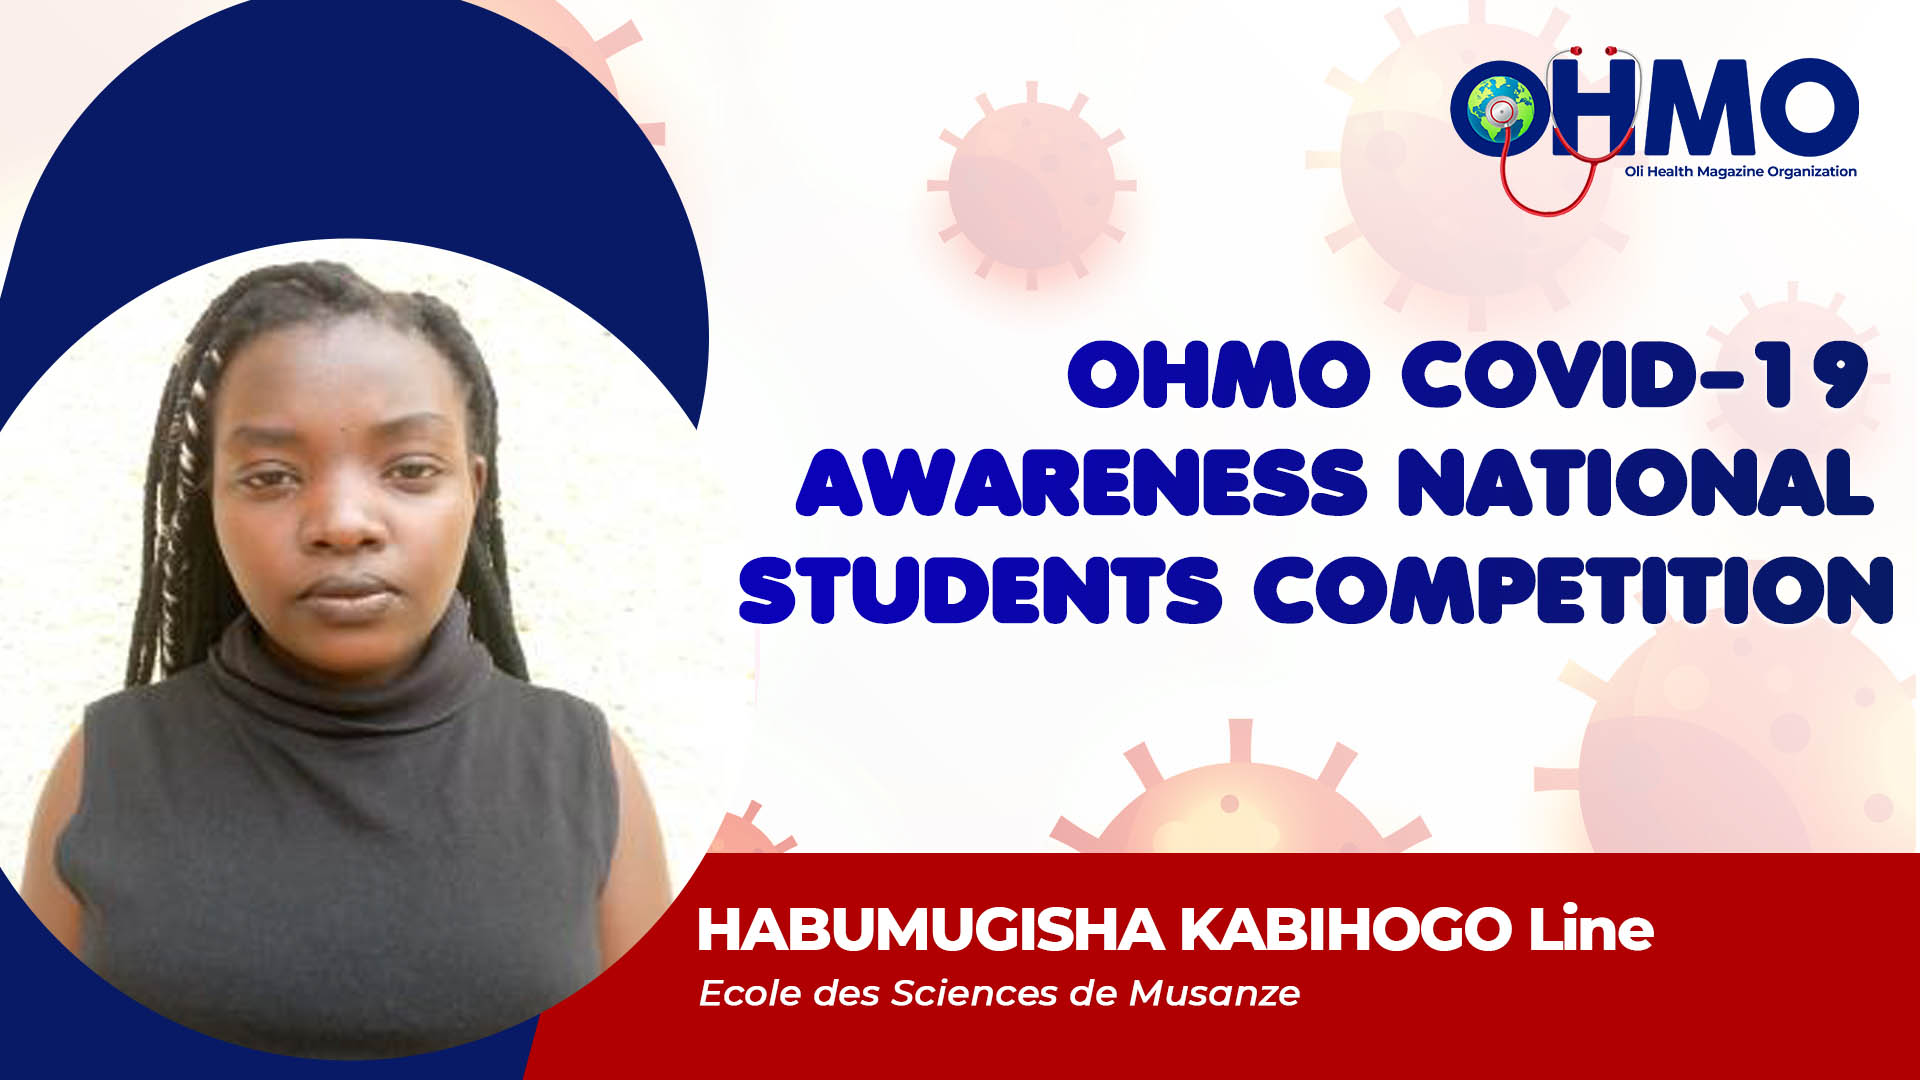 Impact Of COVID19 On Mental Health And How To Cope With It - HABUMUGISHA KABIHOGO Line from Ecole des Sciences de Musanze (ENTRY 49)